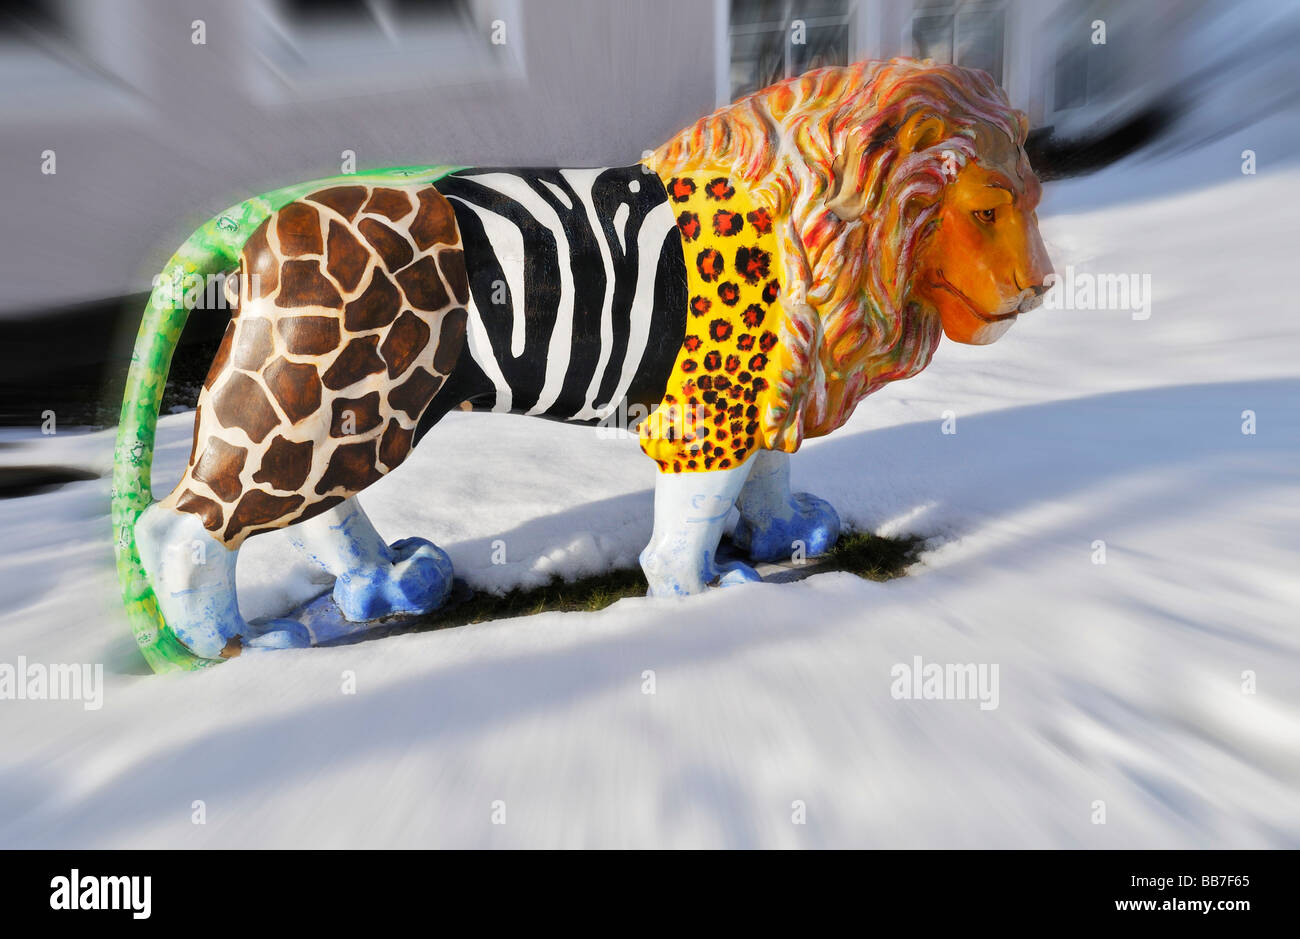 Lion statue in snow, Loewenparade, Lion Parade, Munich, Bavaria, Germany, Europe - Stock Image